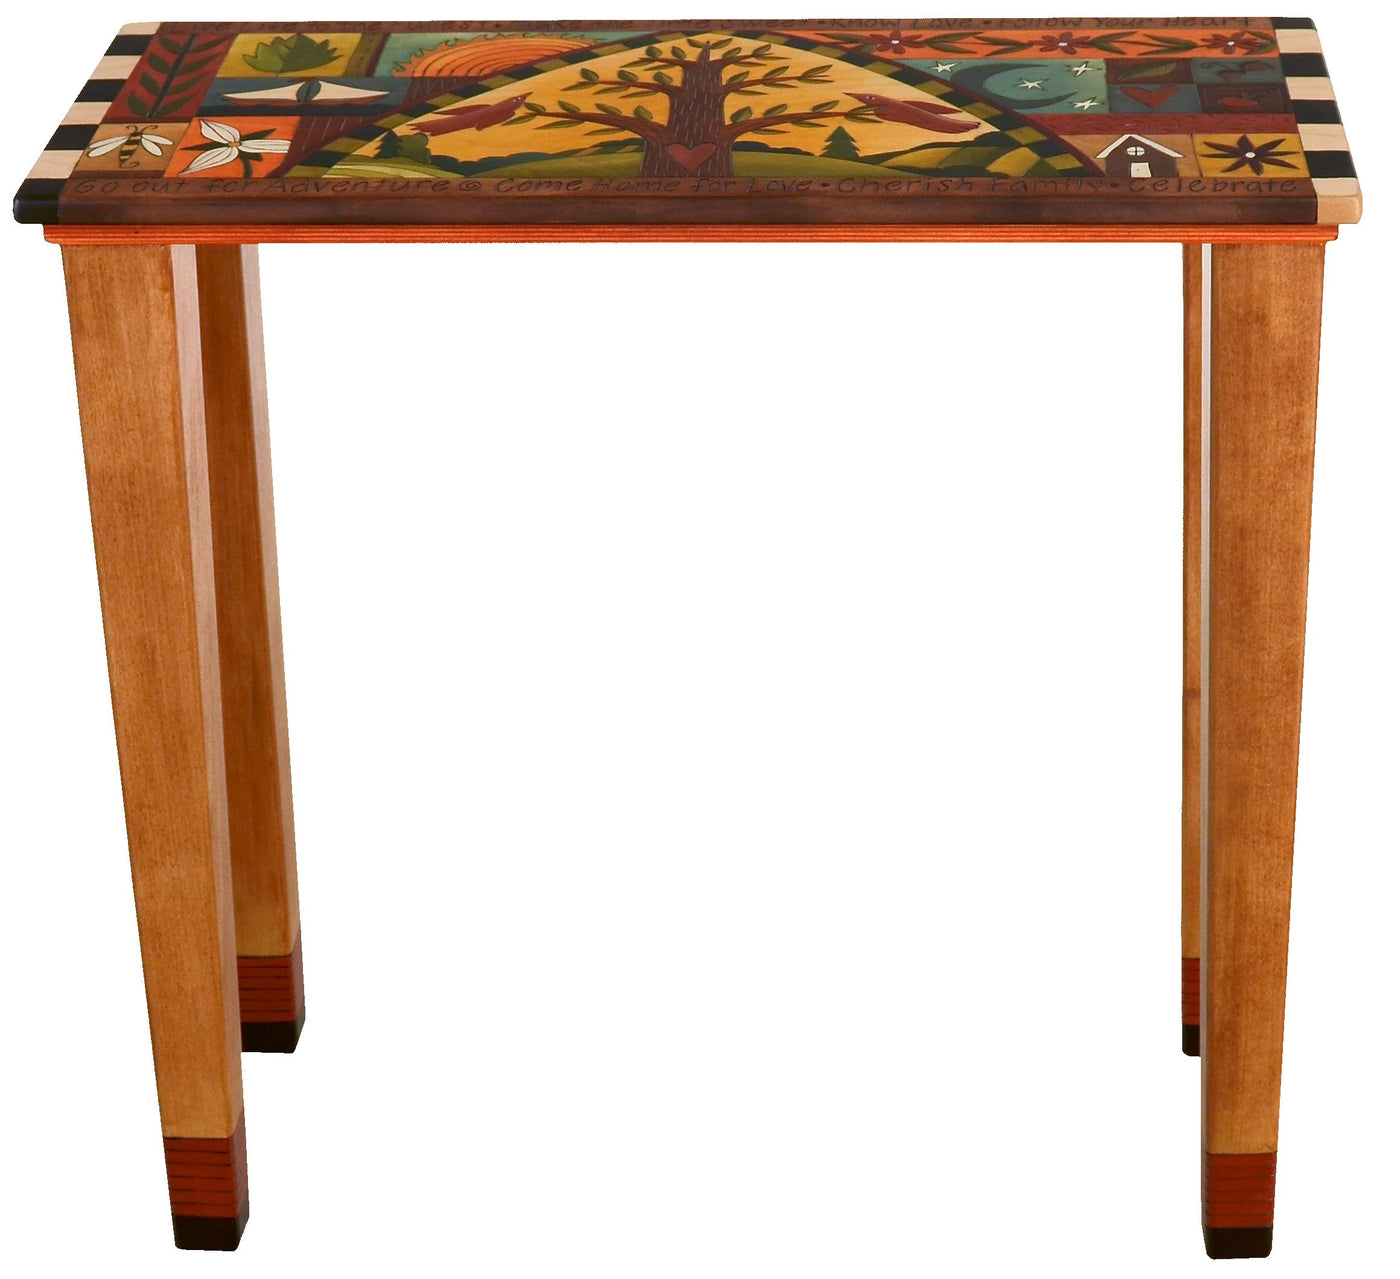 Charmant Sticks Handmade Console Table With Tree Of Life And Colorful Life Icons ...